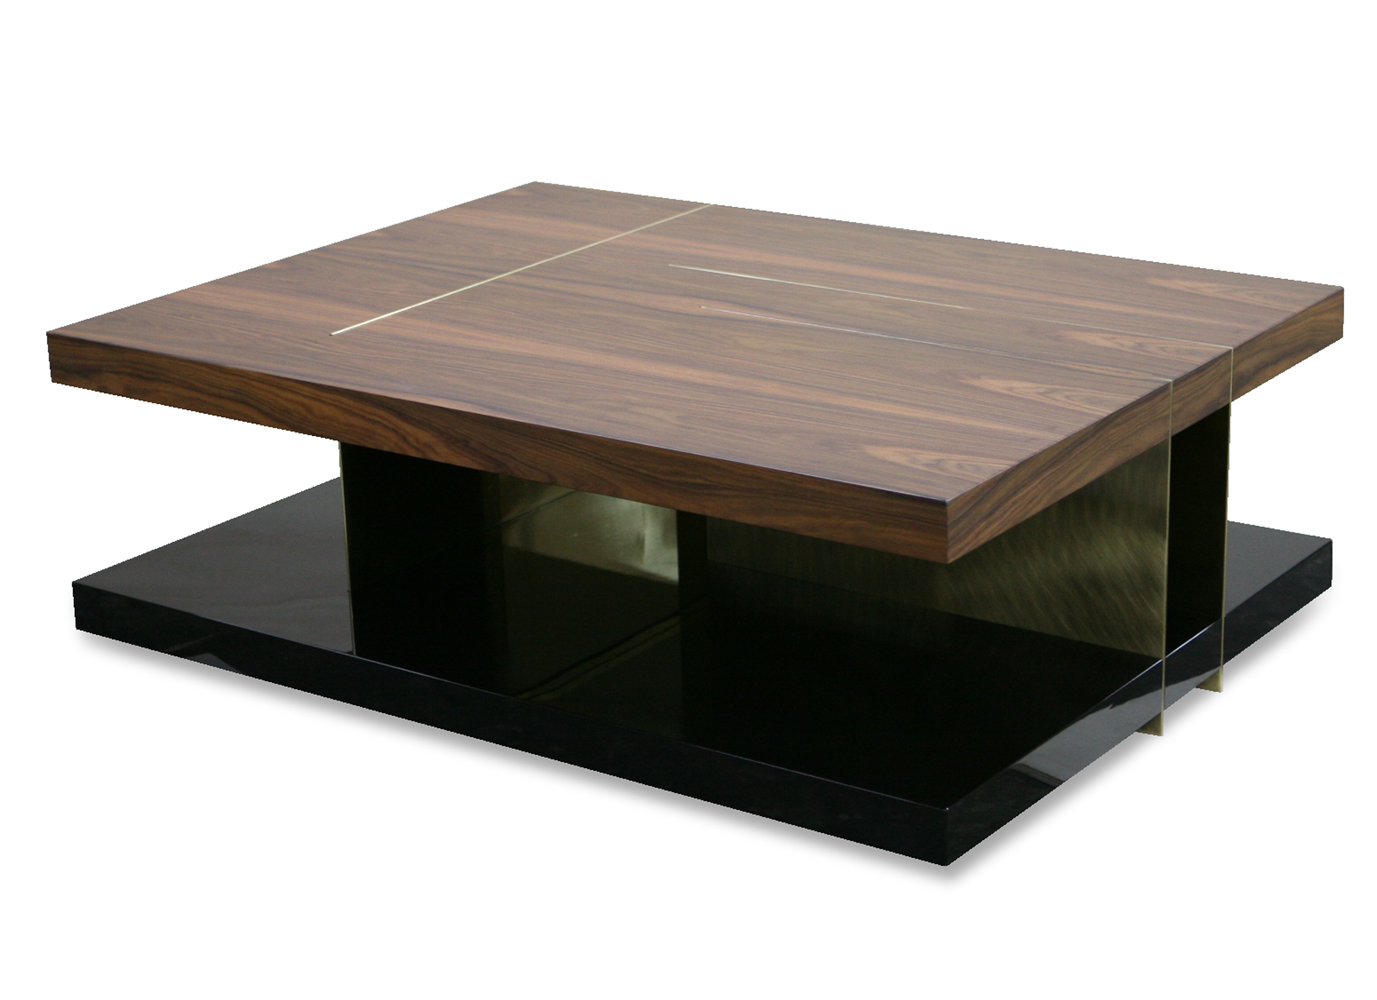 Centre Table Noel Original Idees Accueil Design Et Mobilier